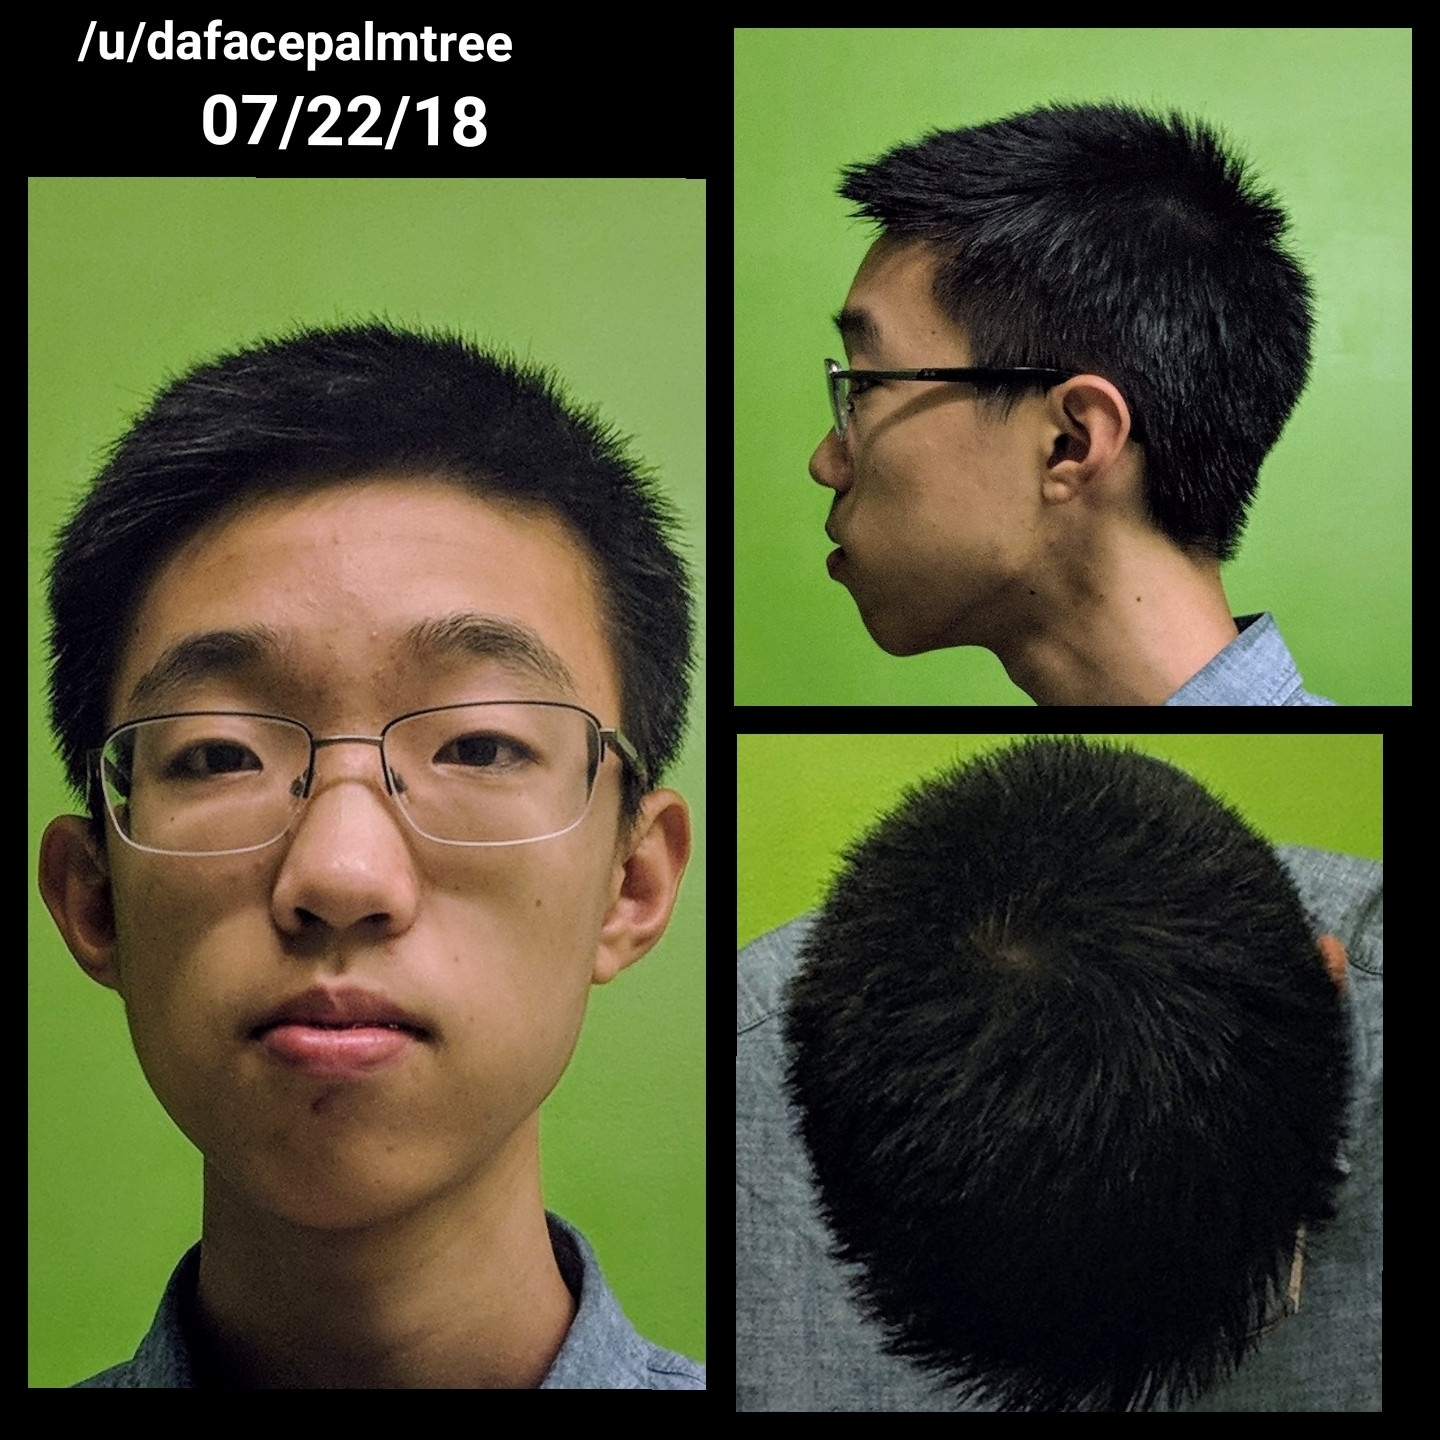 Hairstyle Advice For Straight, Thin Asian Hair Profile? : Malehairadvice inside Asian Male Hairstyles Reddit